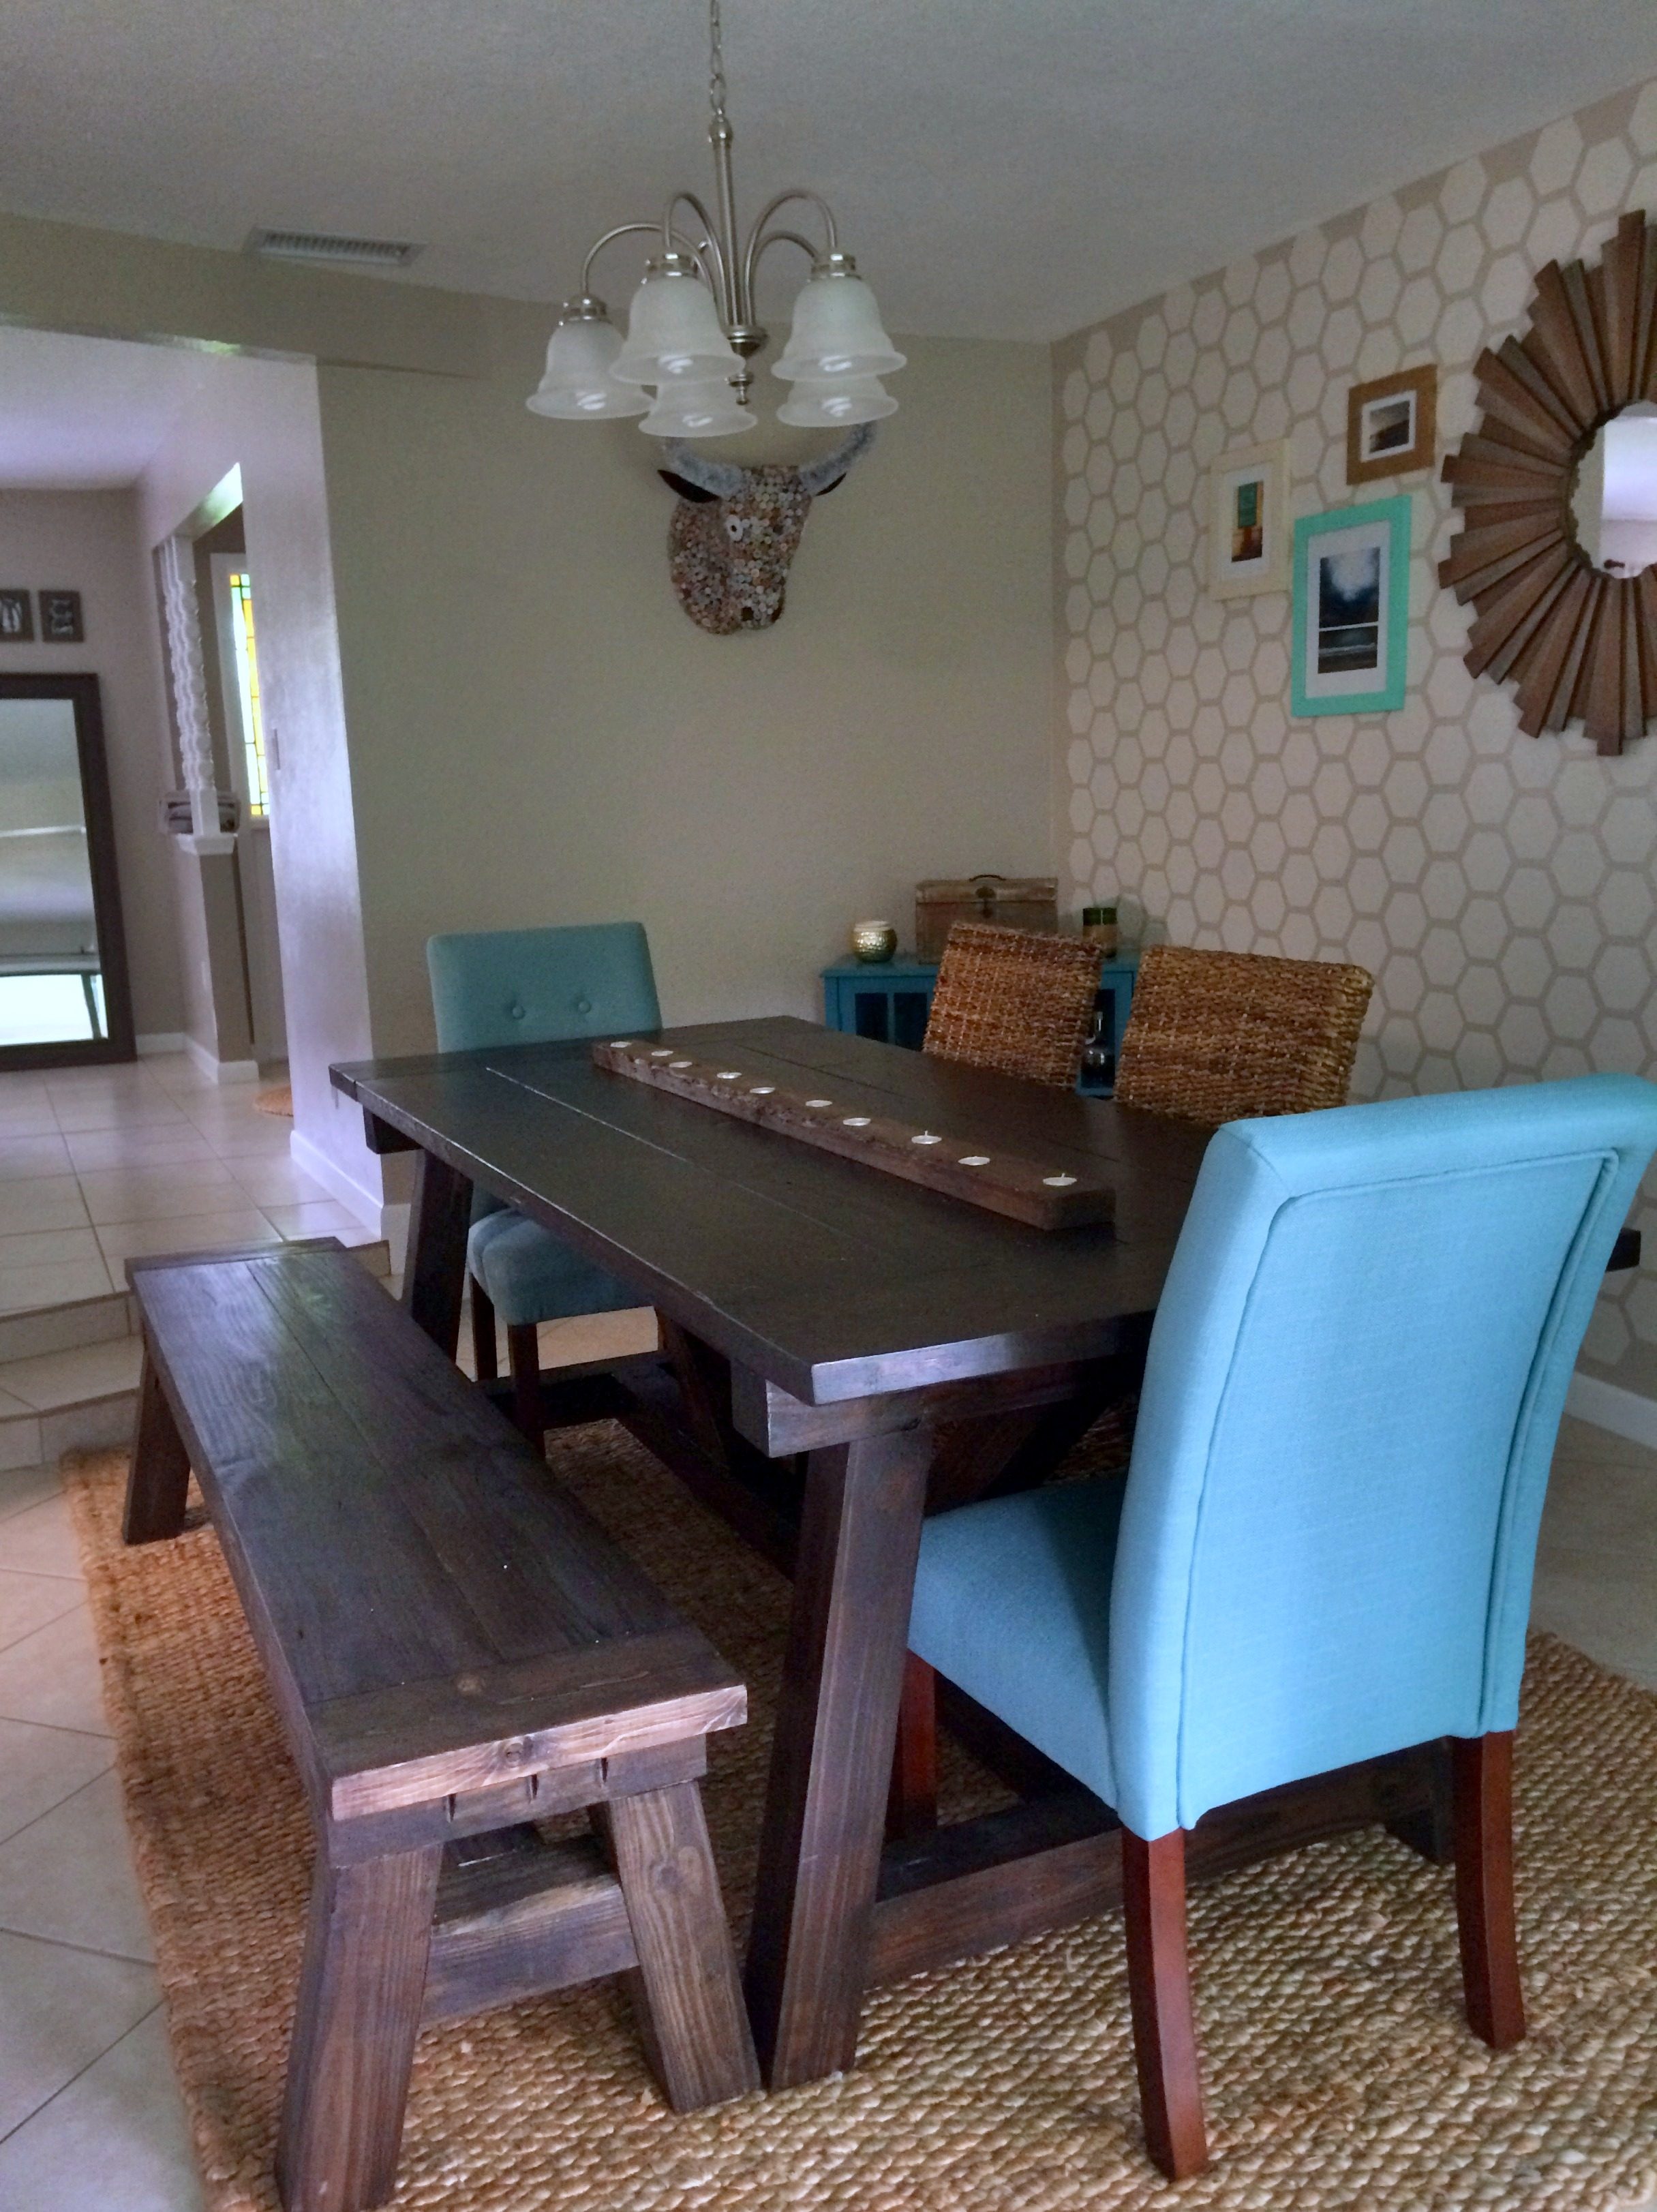 Believe it or not it took me about 6 months to finally settle on a rug and the type of chairs to accompany our farmhouse table. I had a vision one day ... & Home Project // Dining Room Makeover - Within the Grove